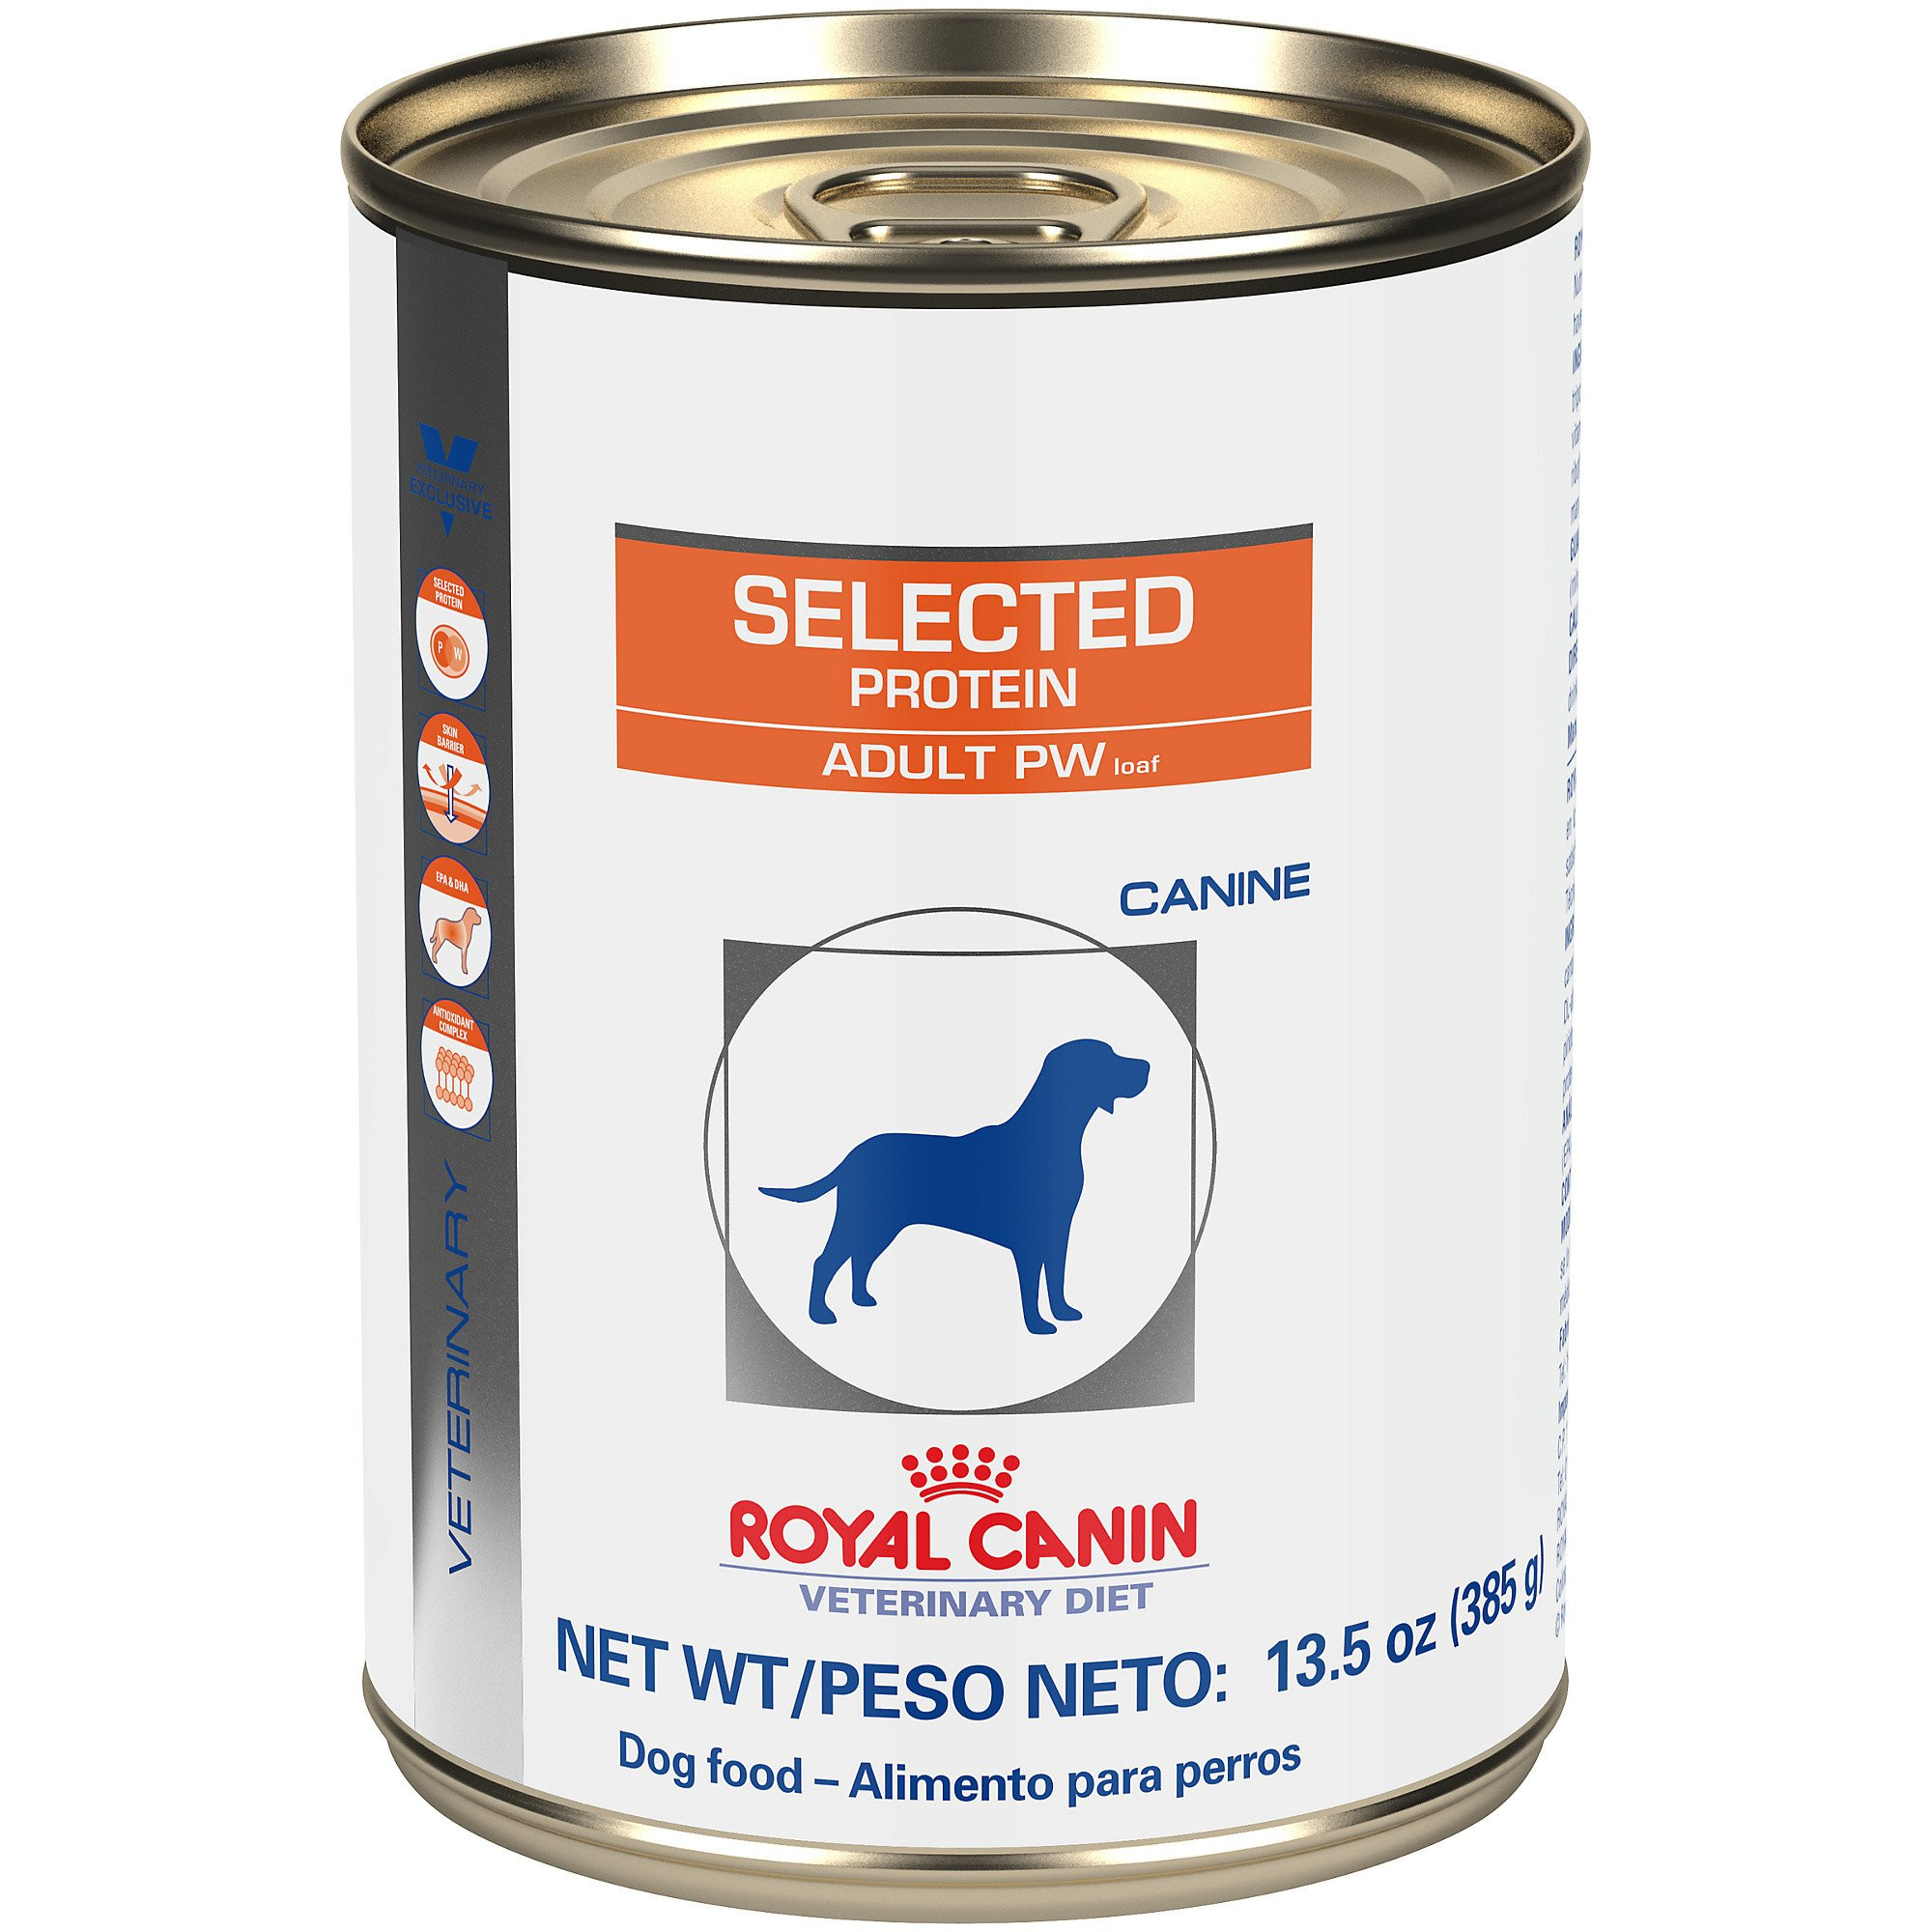 Royal Canin Veterinary Diet Adult Canned Dog Food